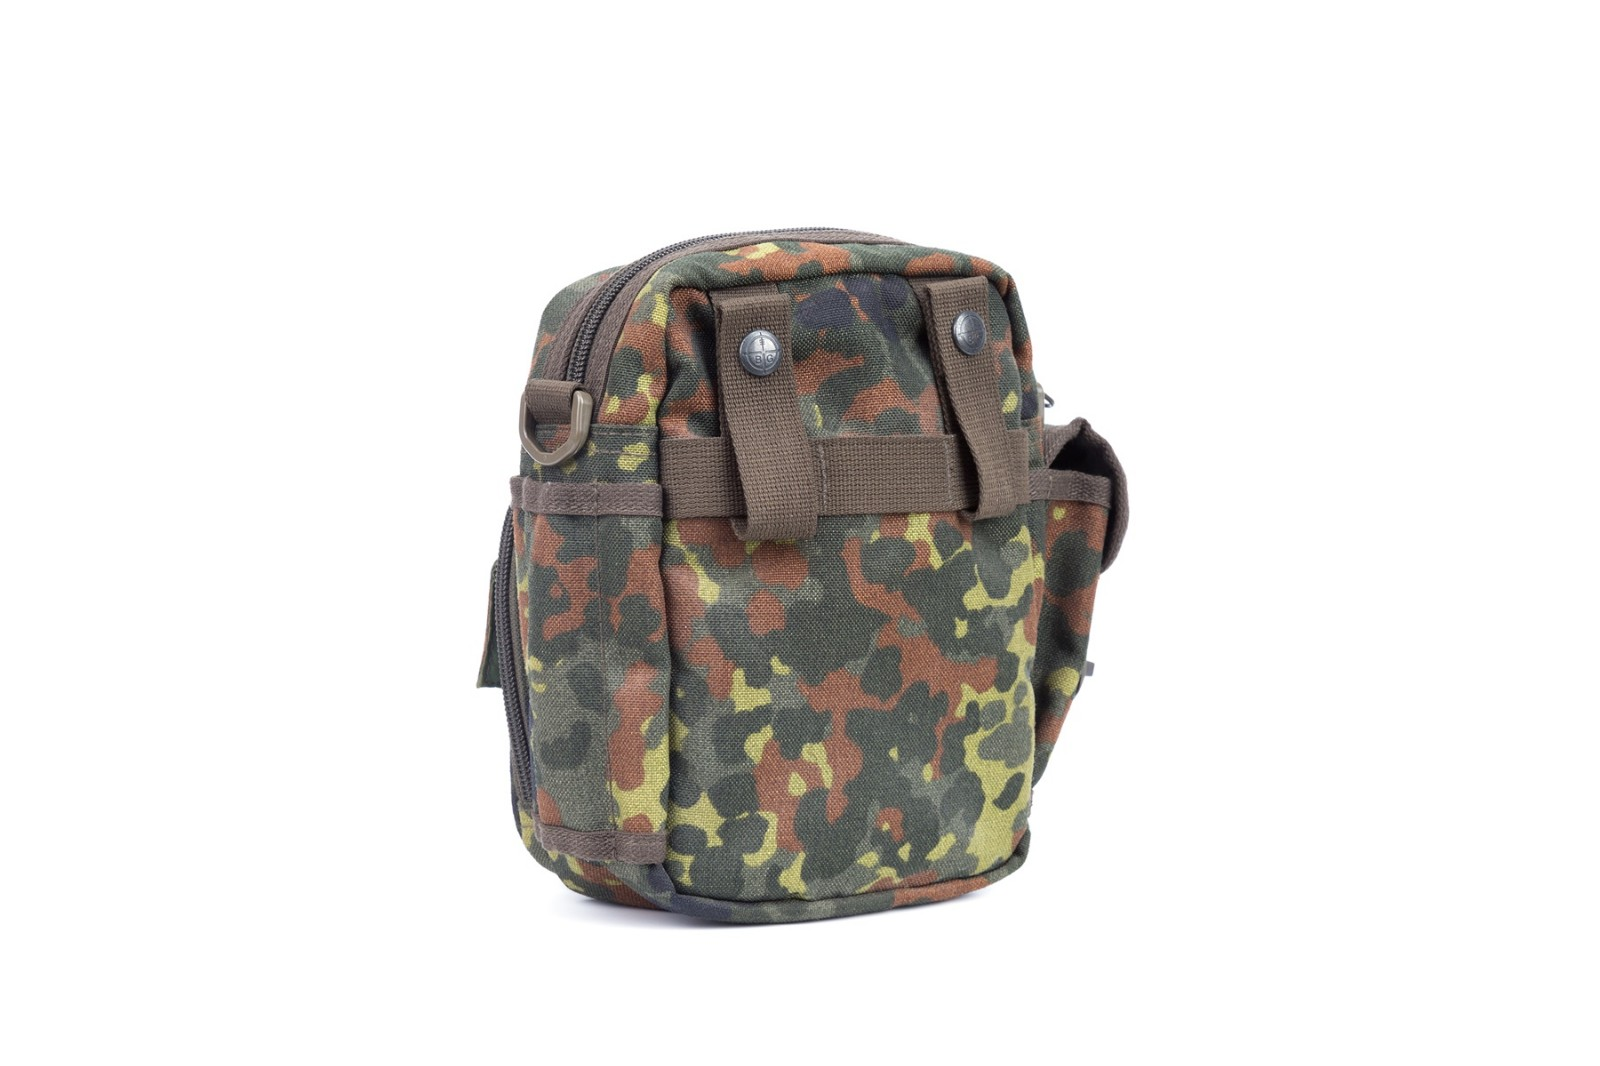 GF bags-Professional Military Gear Bags and Tactical Pouch Bag From GF Bags-6